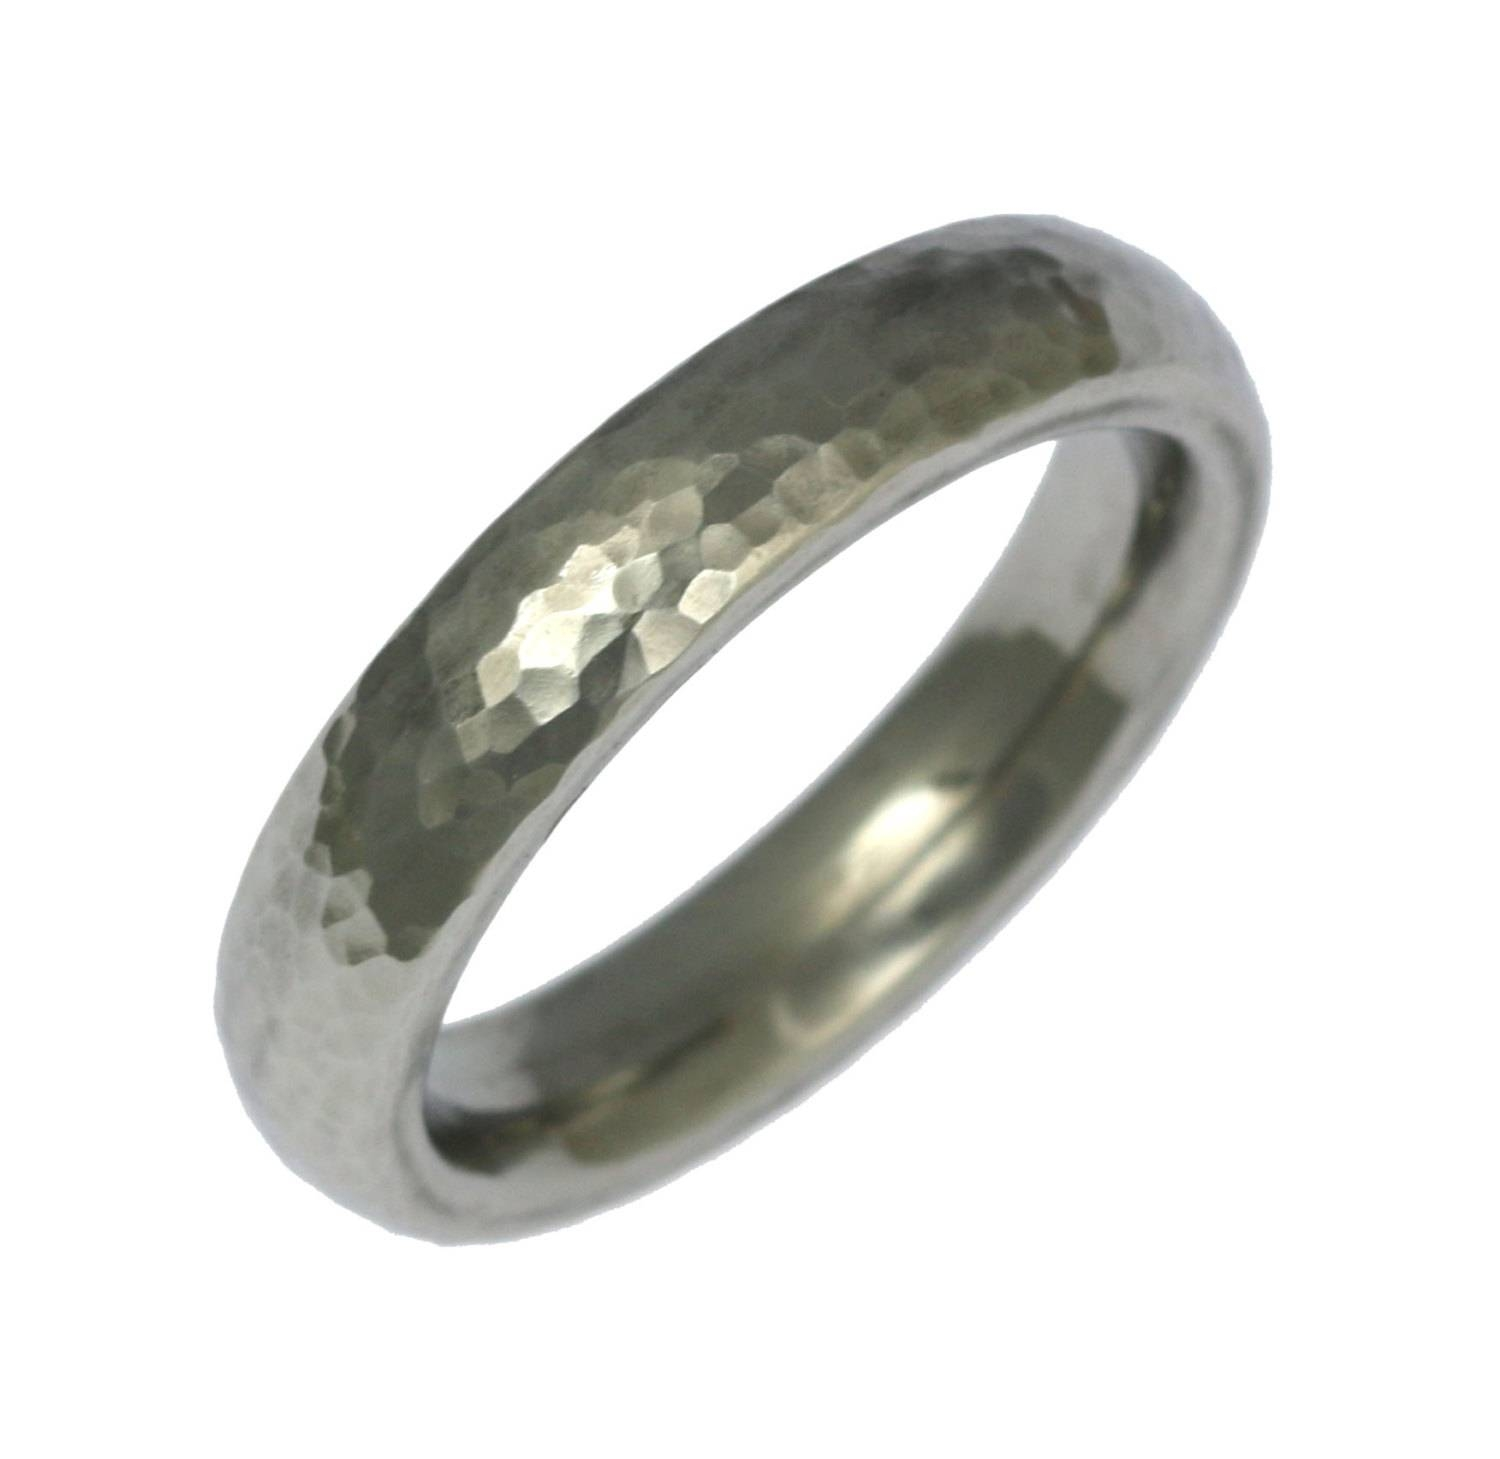 5Mm Hammered Stainless Steel Mens Ring Mens Hammered Wedding Regarding Latest Platinum Hammered Wedding Bands (Gallery 5 of 15)